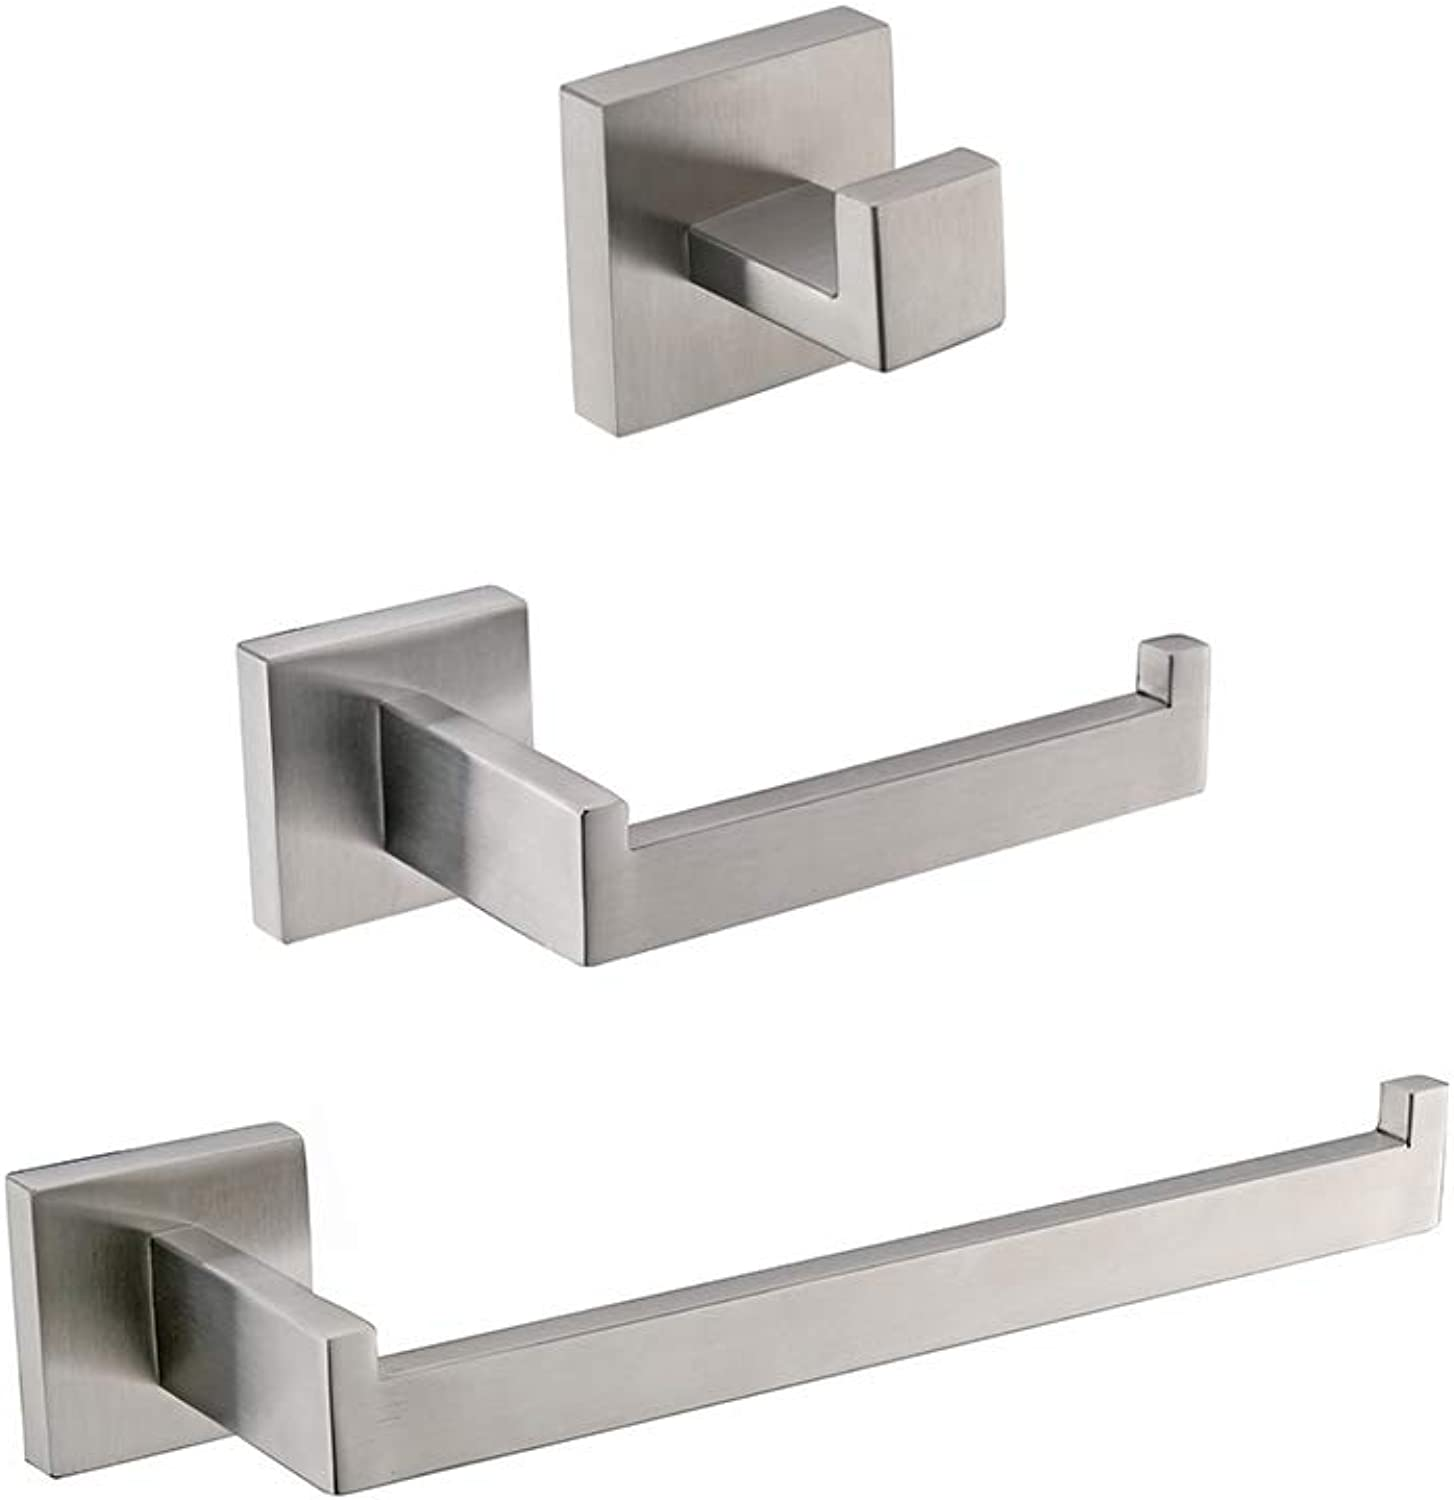 TURS 3-Piece Bathroom Accessory Set SUS 304 Stainless Steel RUSTPROOF Toilet Paper Holder Towel Bar Holder Robe Hook Wall Mount, Brushed Finish, Q7010BR